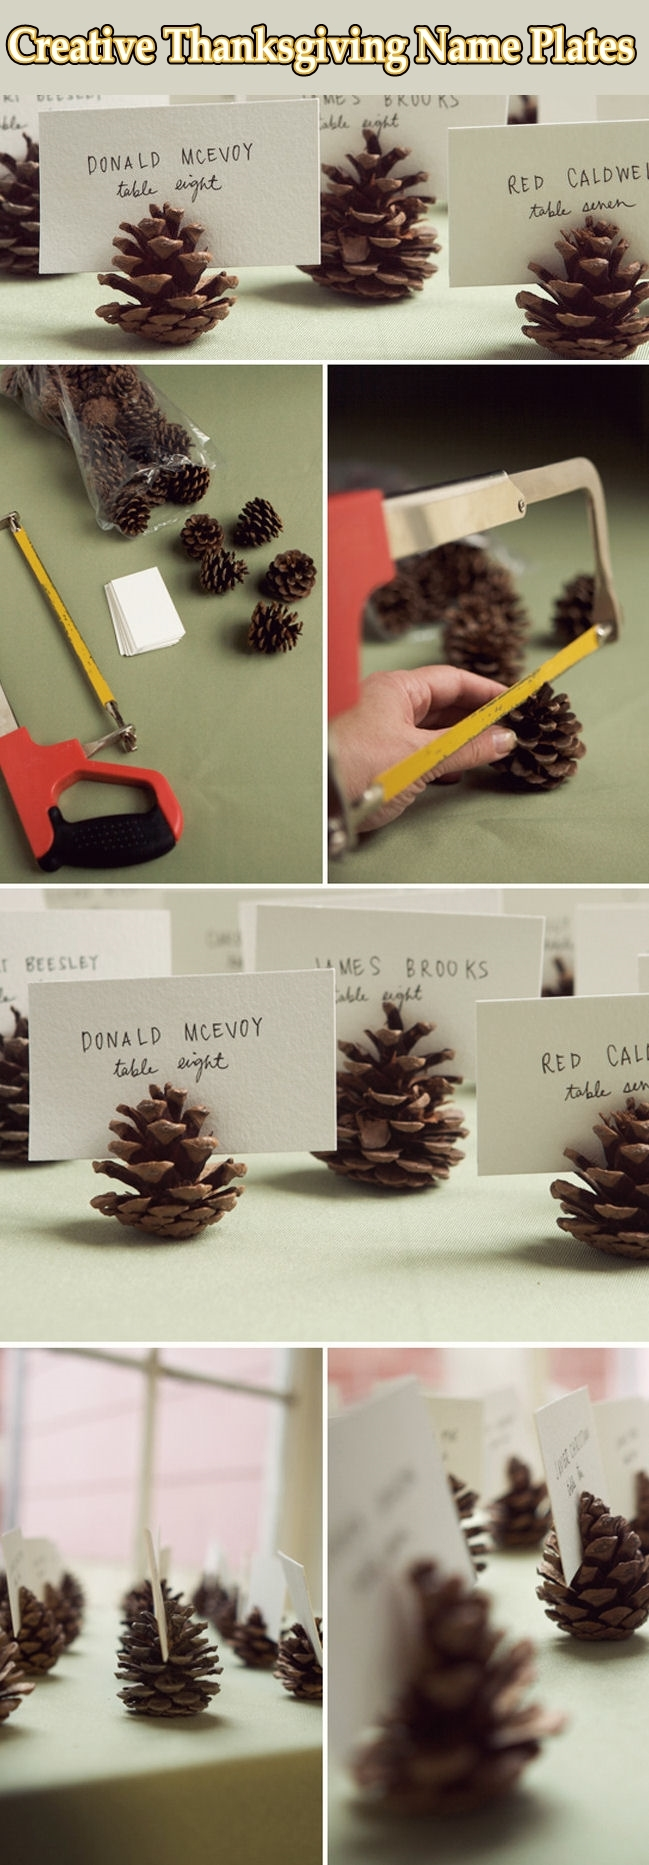 DIY Thanksgiving Name Plates Pictures Photos And Images